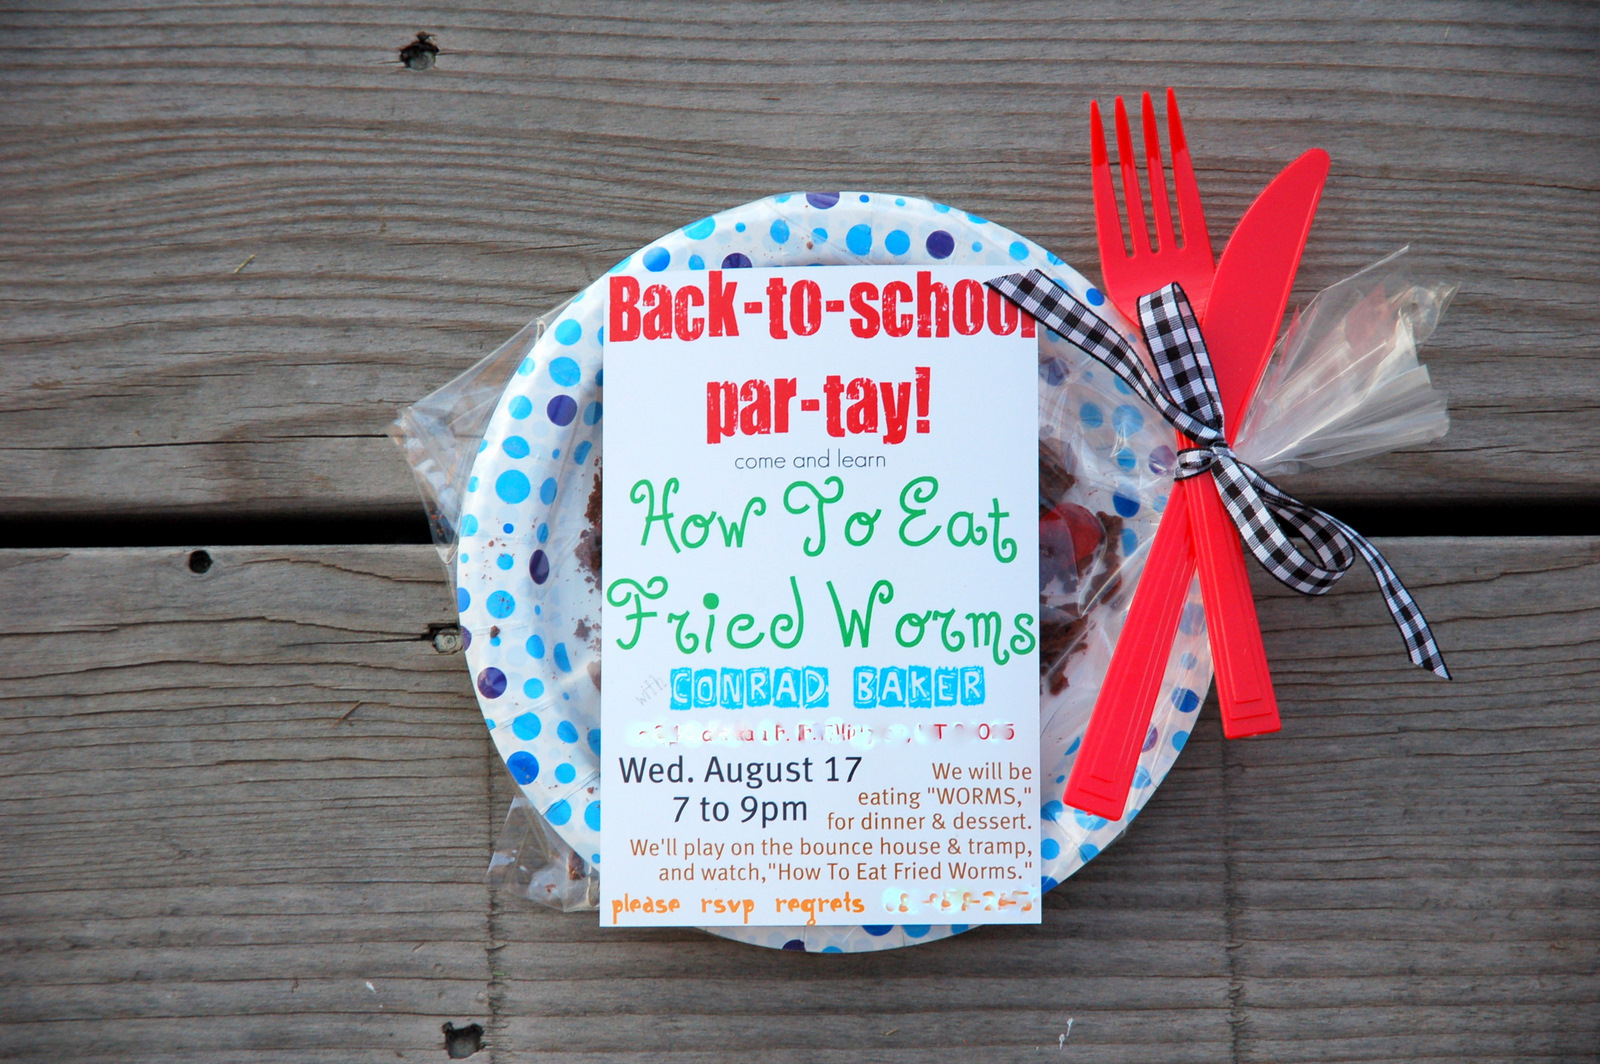 Restlessrisa how to eat fried worms back to school party how to eat fried worms back to school party ccuart Image collections